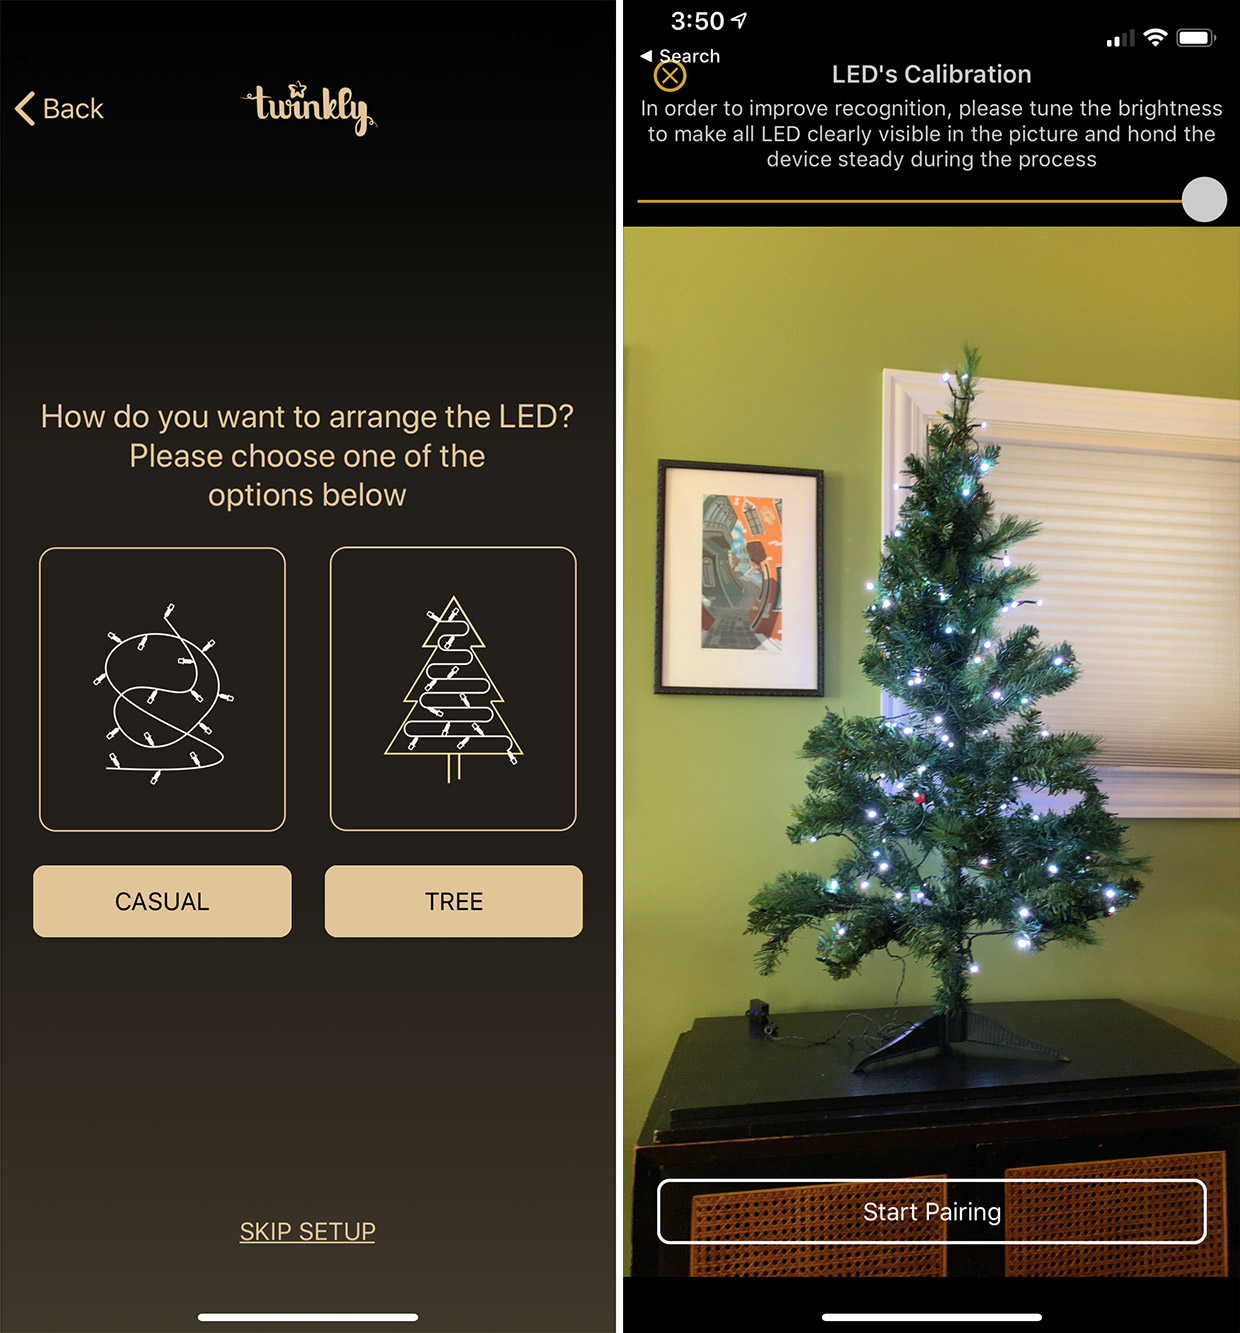 hight resolution of after the twinkly string is connected to your wi fi network you go through a slick visual calibration process which uses your phone s camera and ai smarts